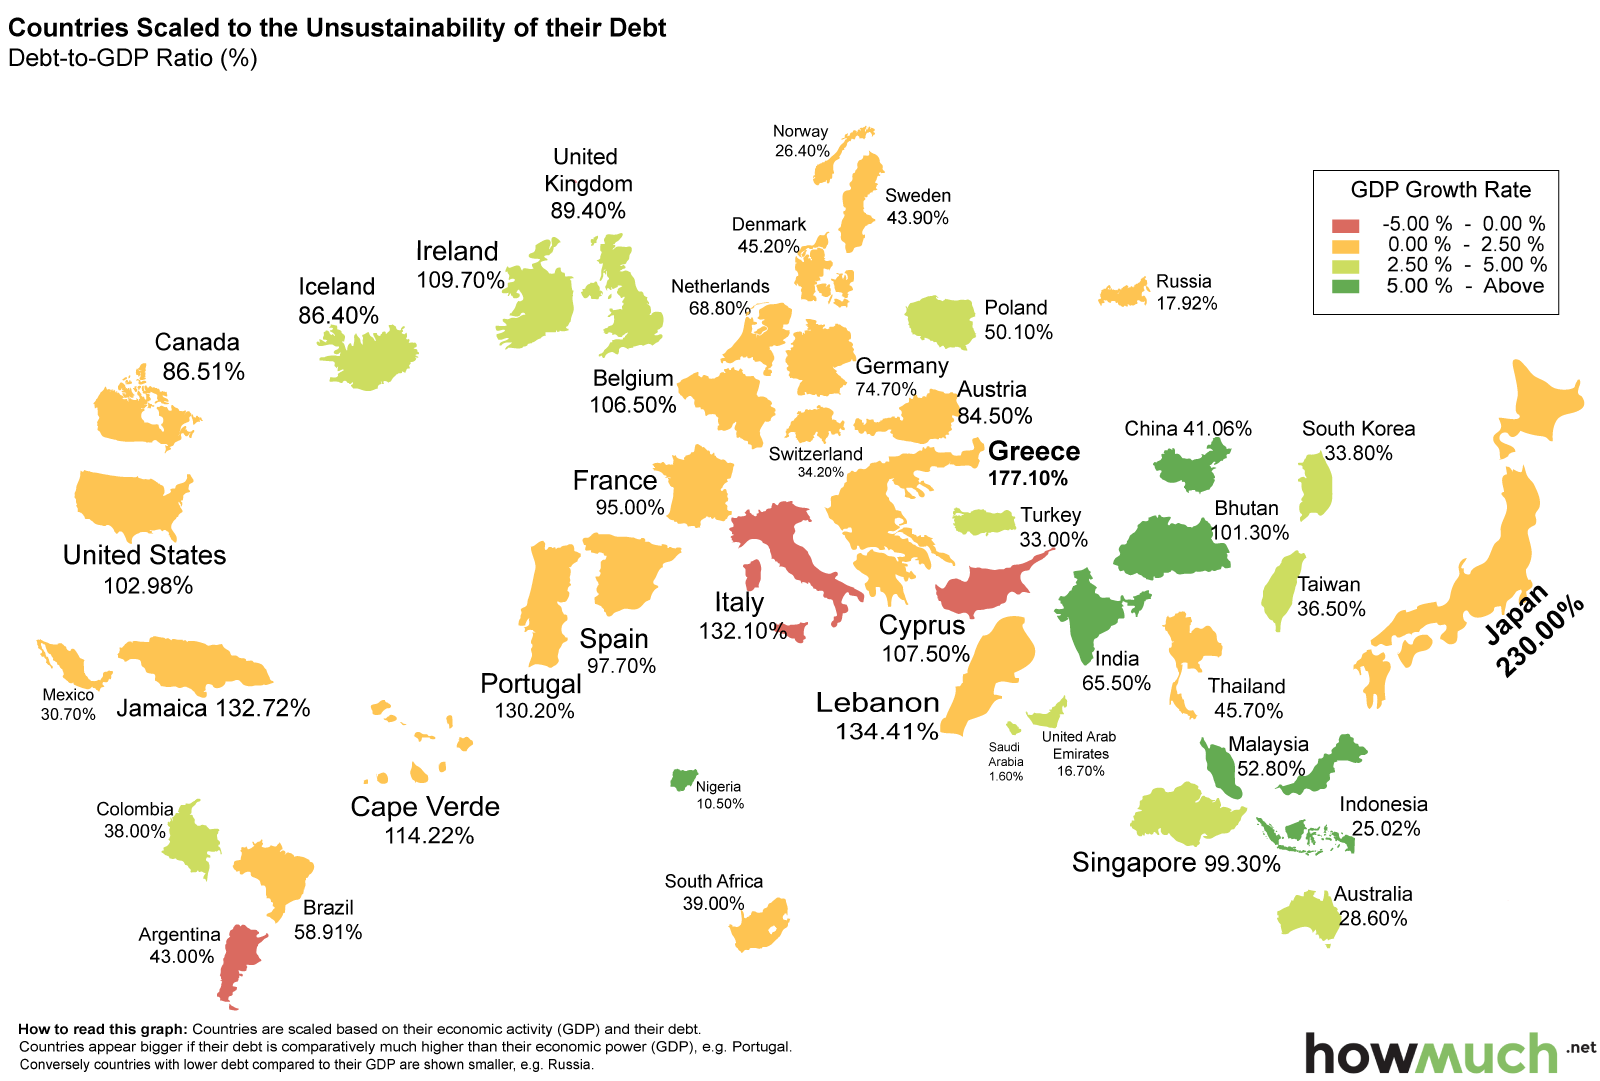 Countries Scaled to the Unsustainabillity of their Debt